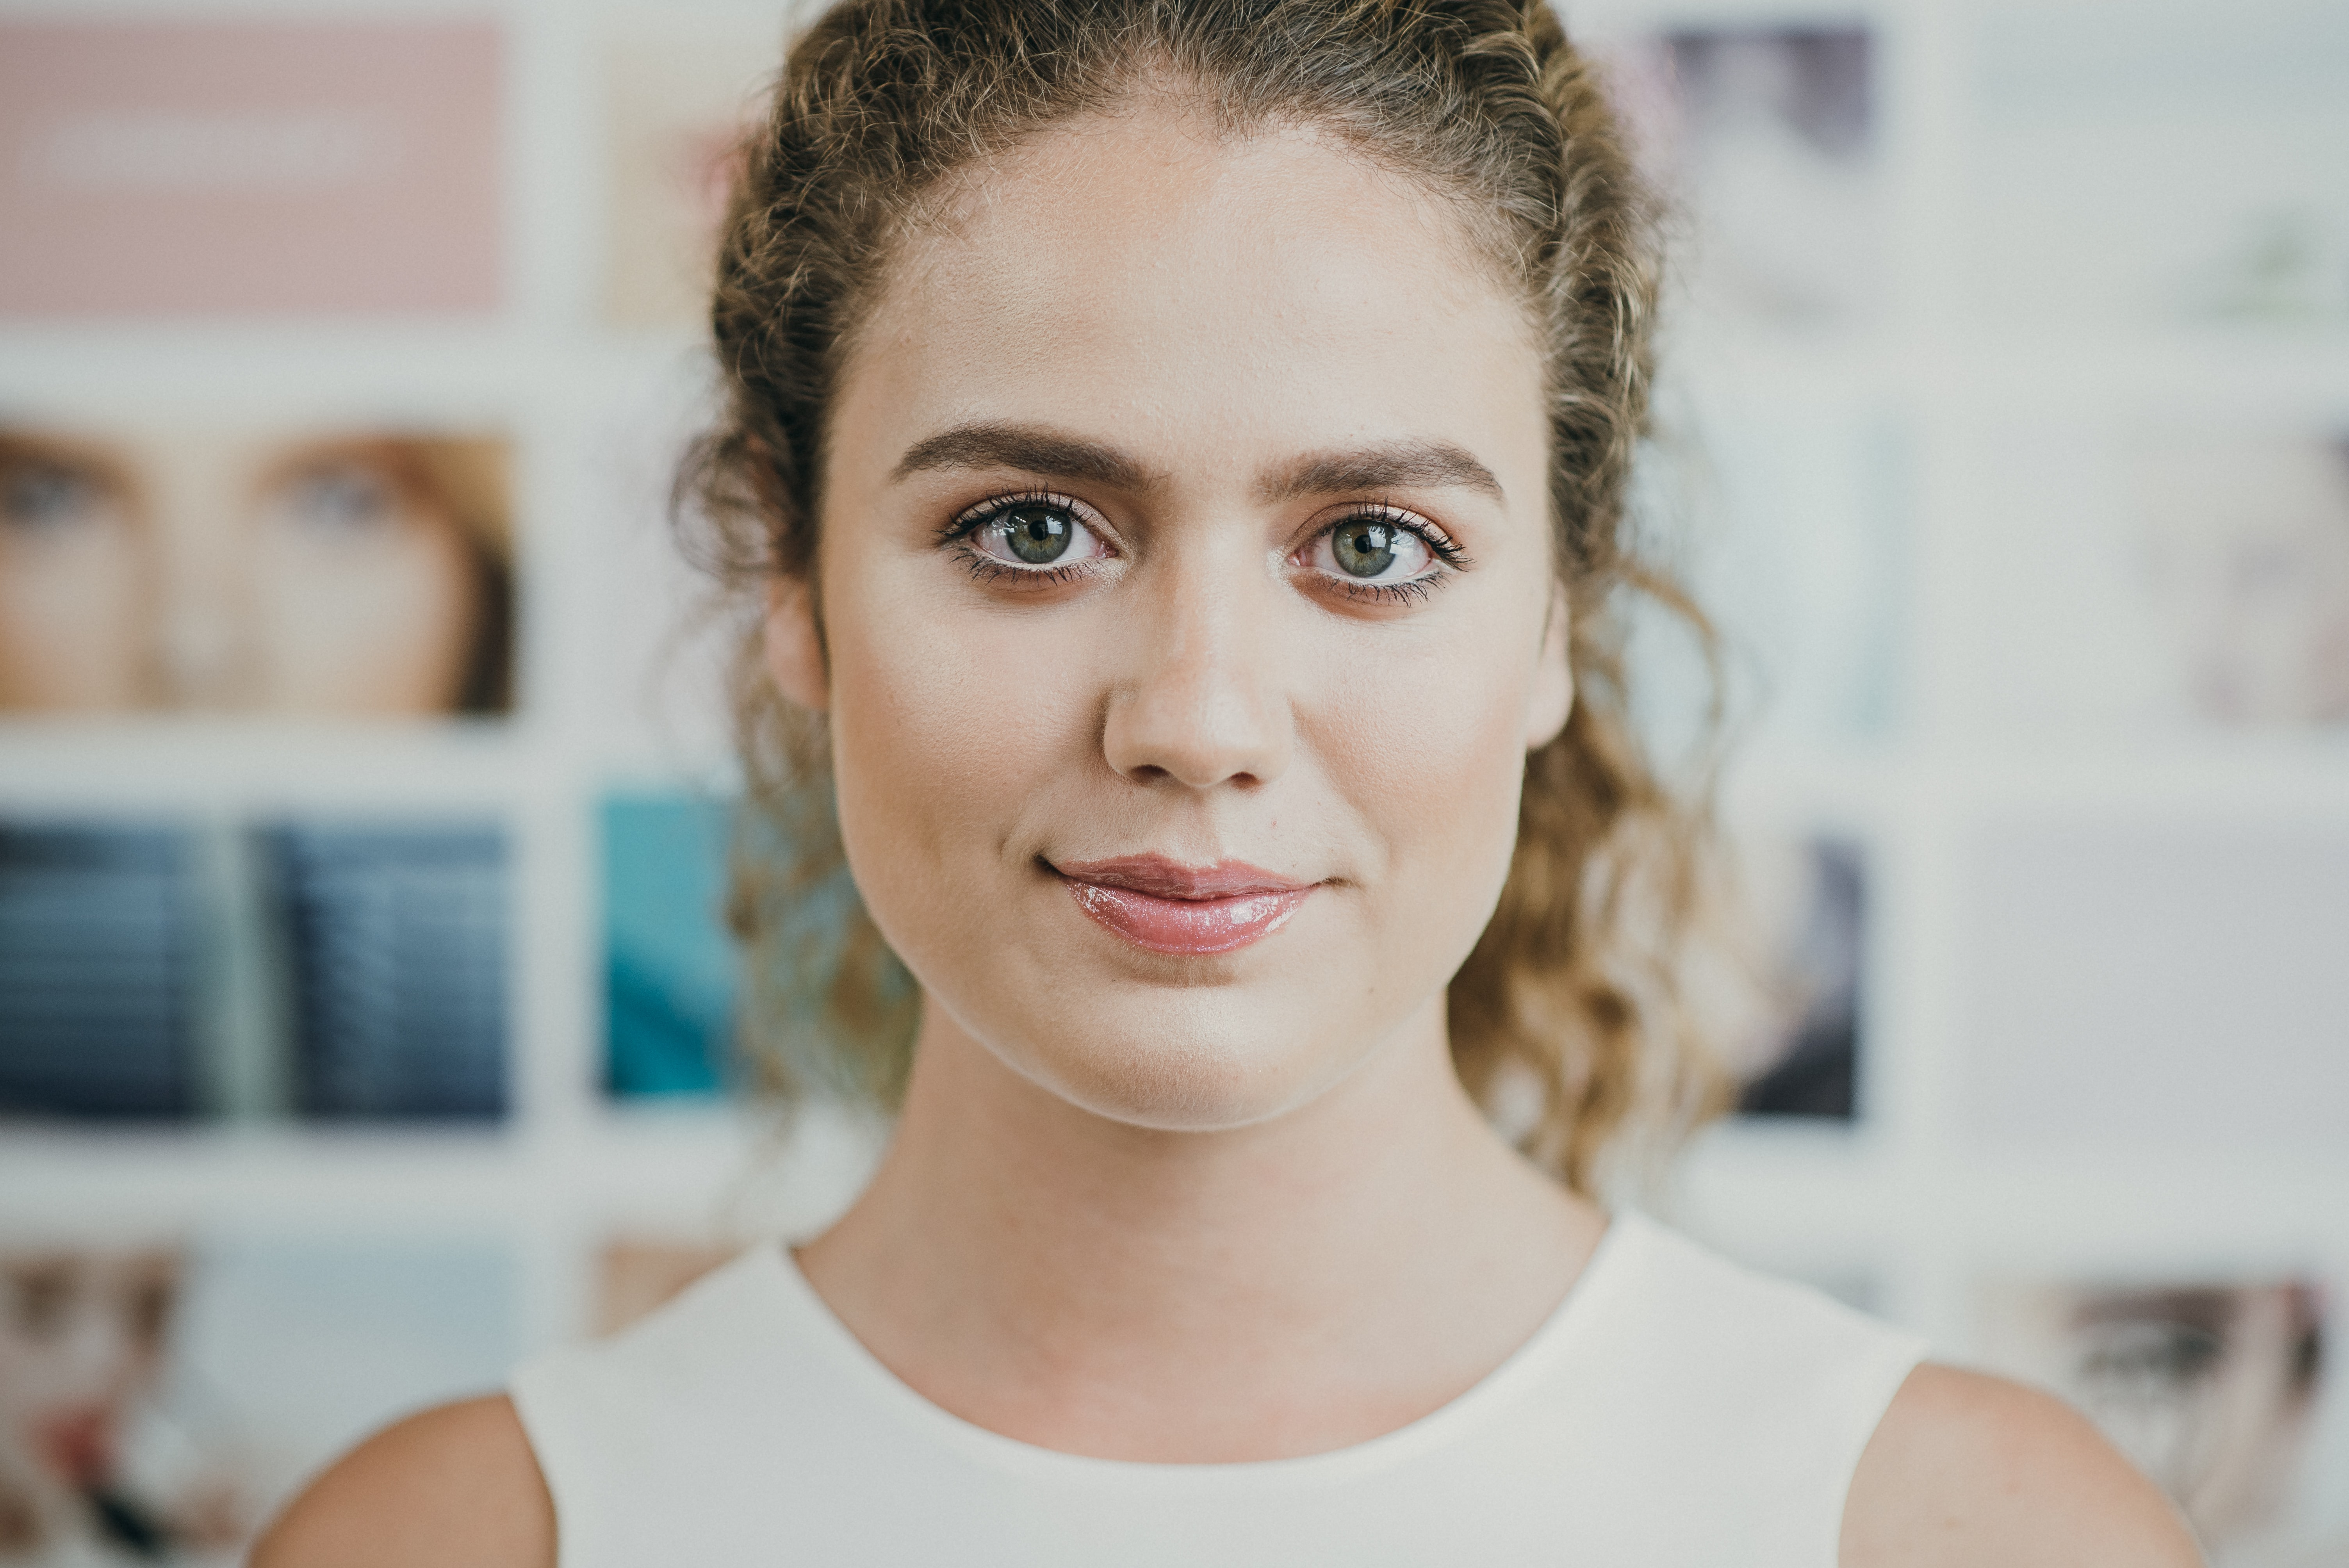 Woman with subtle natural makeup smiling softly